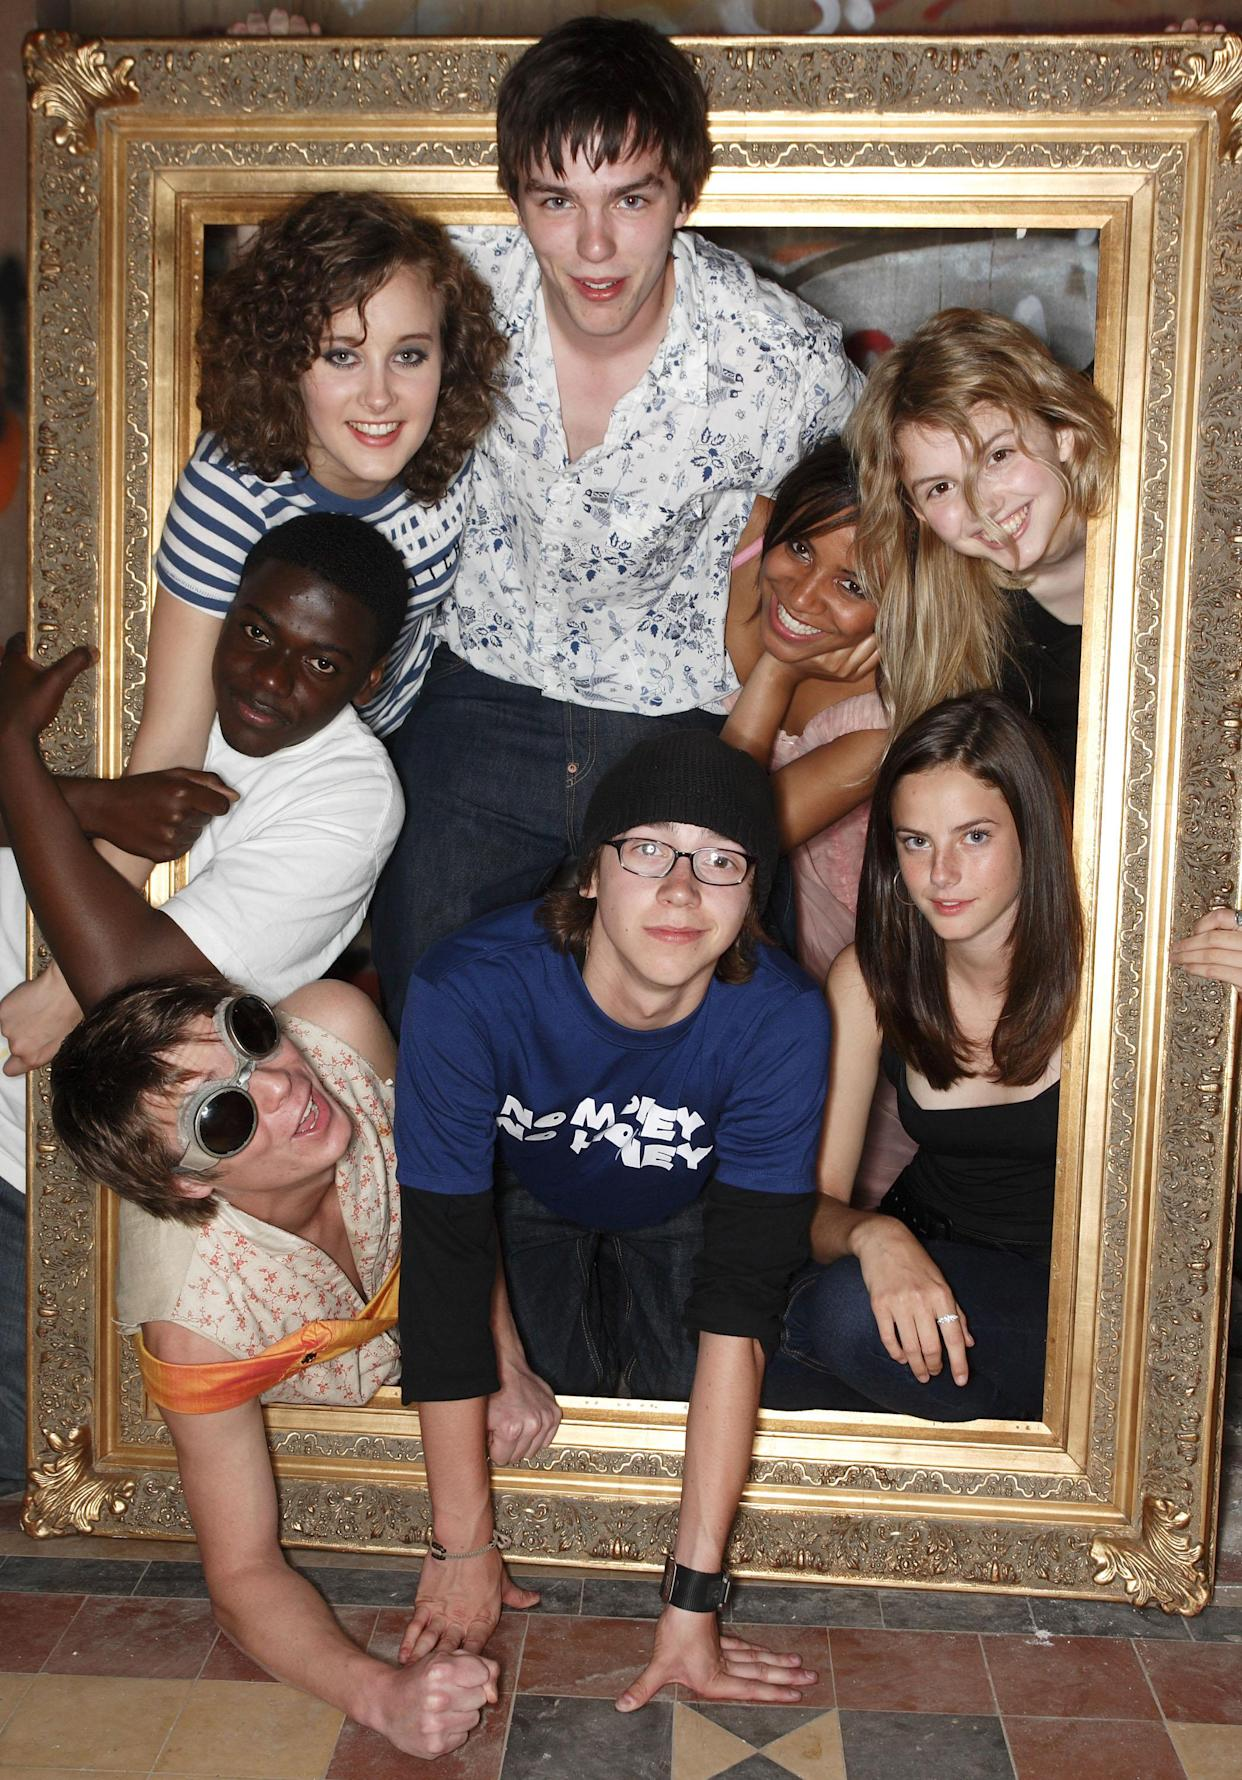 BRISTOL, UNITED KINGDOM - AUGUST 02:  Joseph Dempsie, April Pearson, Nicholas Hoult, Mike Bailey, Larissa Wilson, Hannah Murray and Kaya Scodelario attend the Channel 4/ E4 party for a one-off Skins special on August 2, 2007 in Bristol (Gloucestershire), England.  (Photo by Mike Marsland/WireImage)